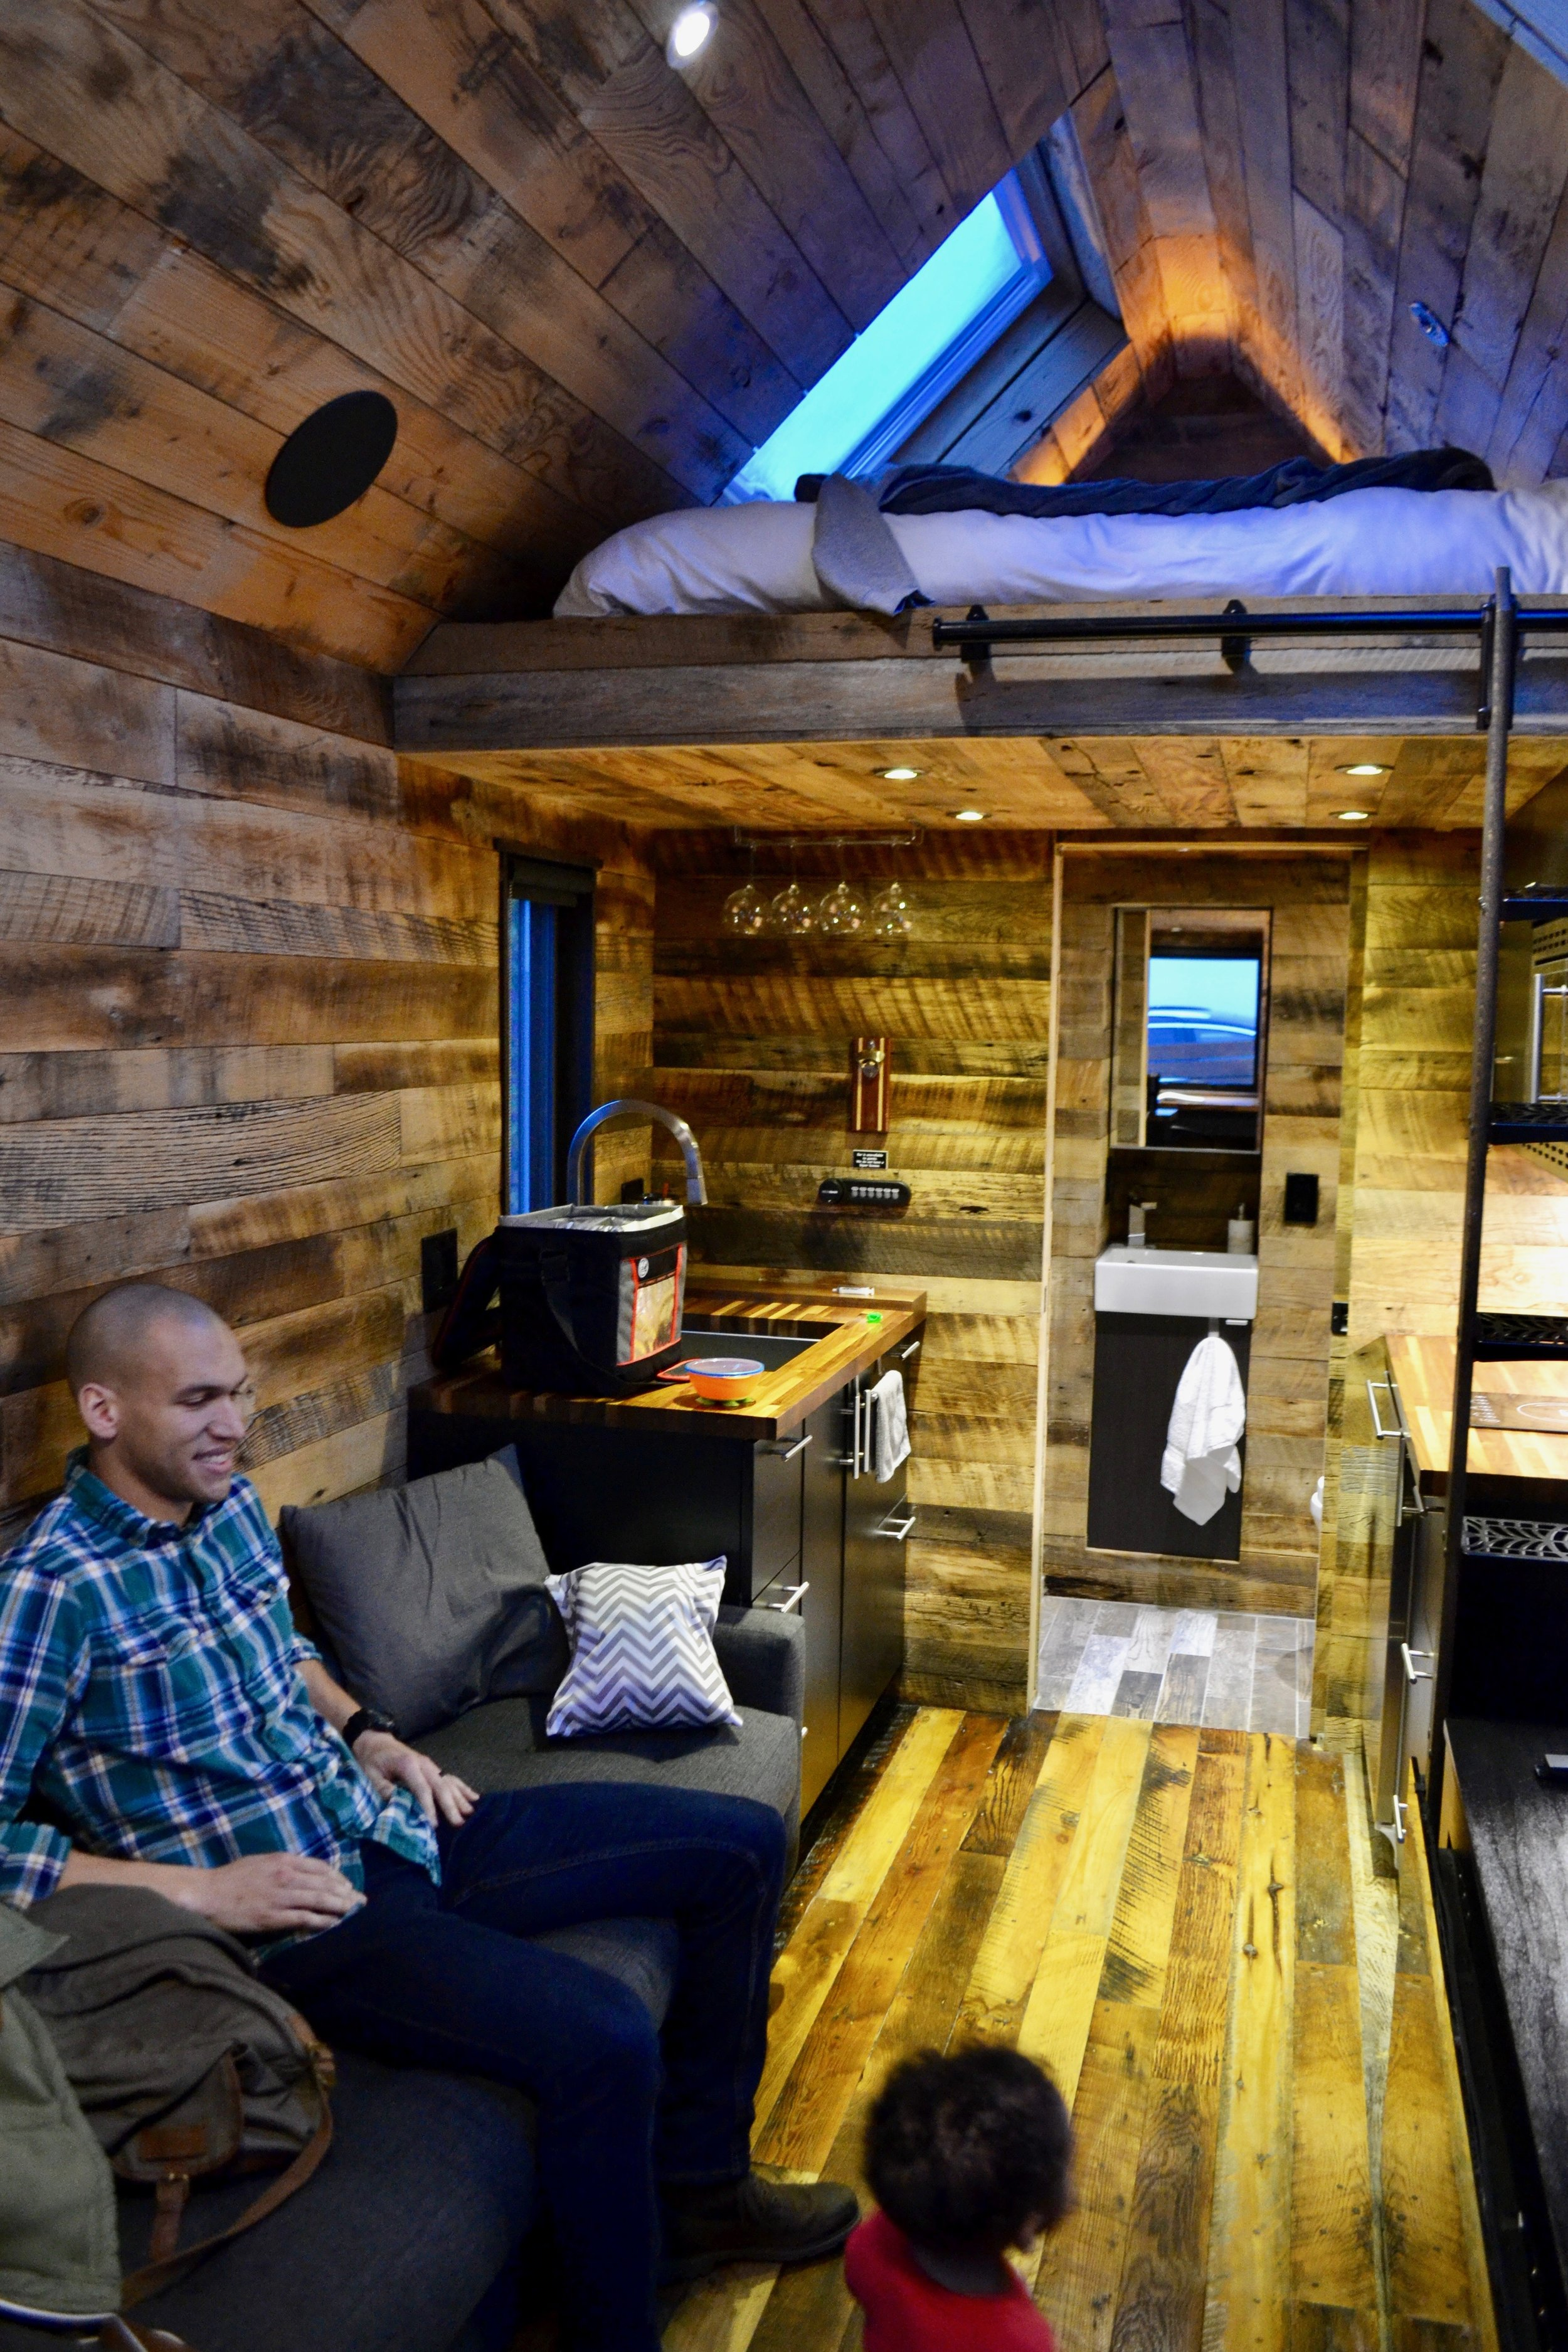 The natural wood made it feel so warm & comfortable. Like a modern cabin!